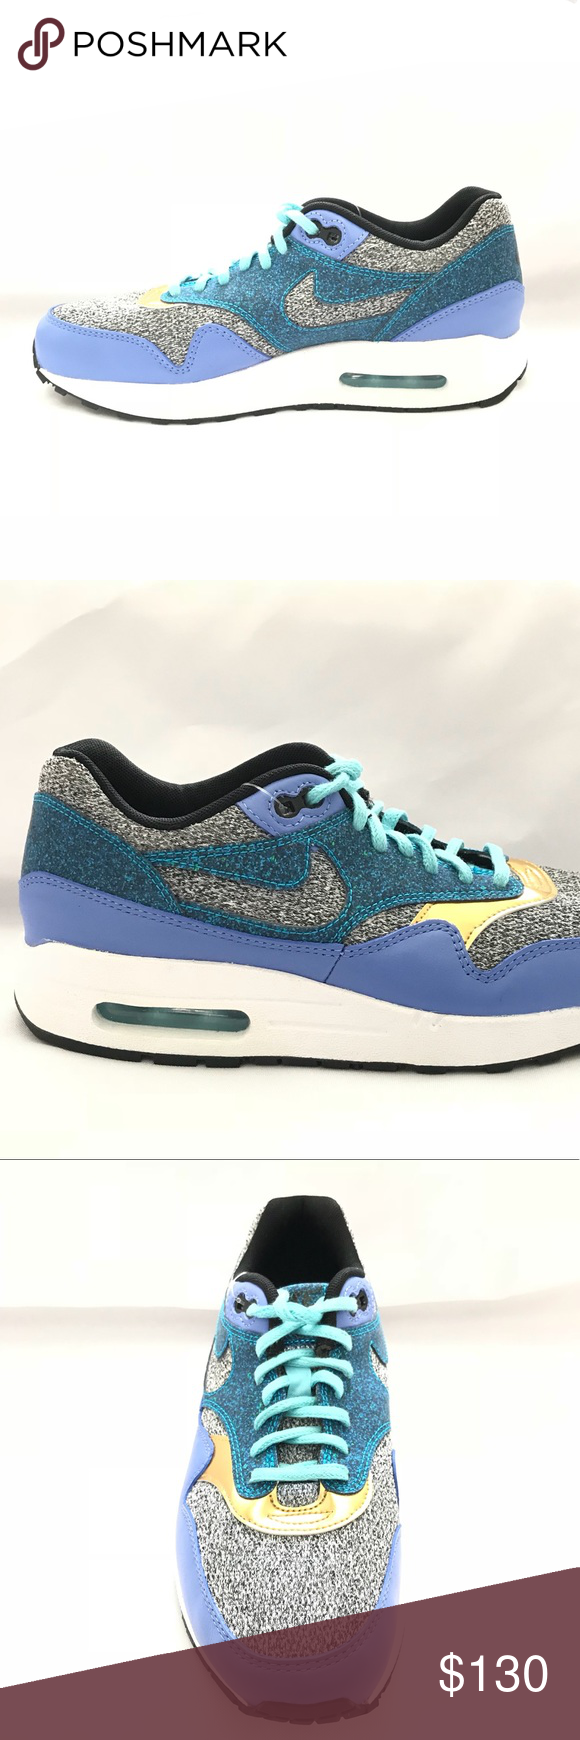 040283125030 Nike Air Max 1 SE Blue Purple Green Gold Women Women s Nike Air Max 1 SE